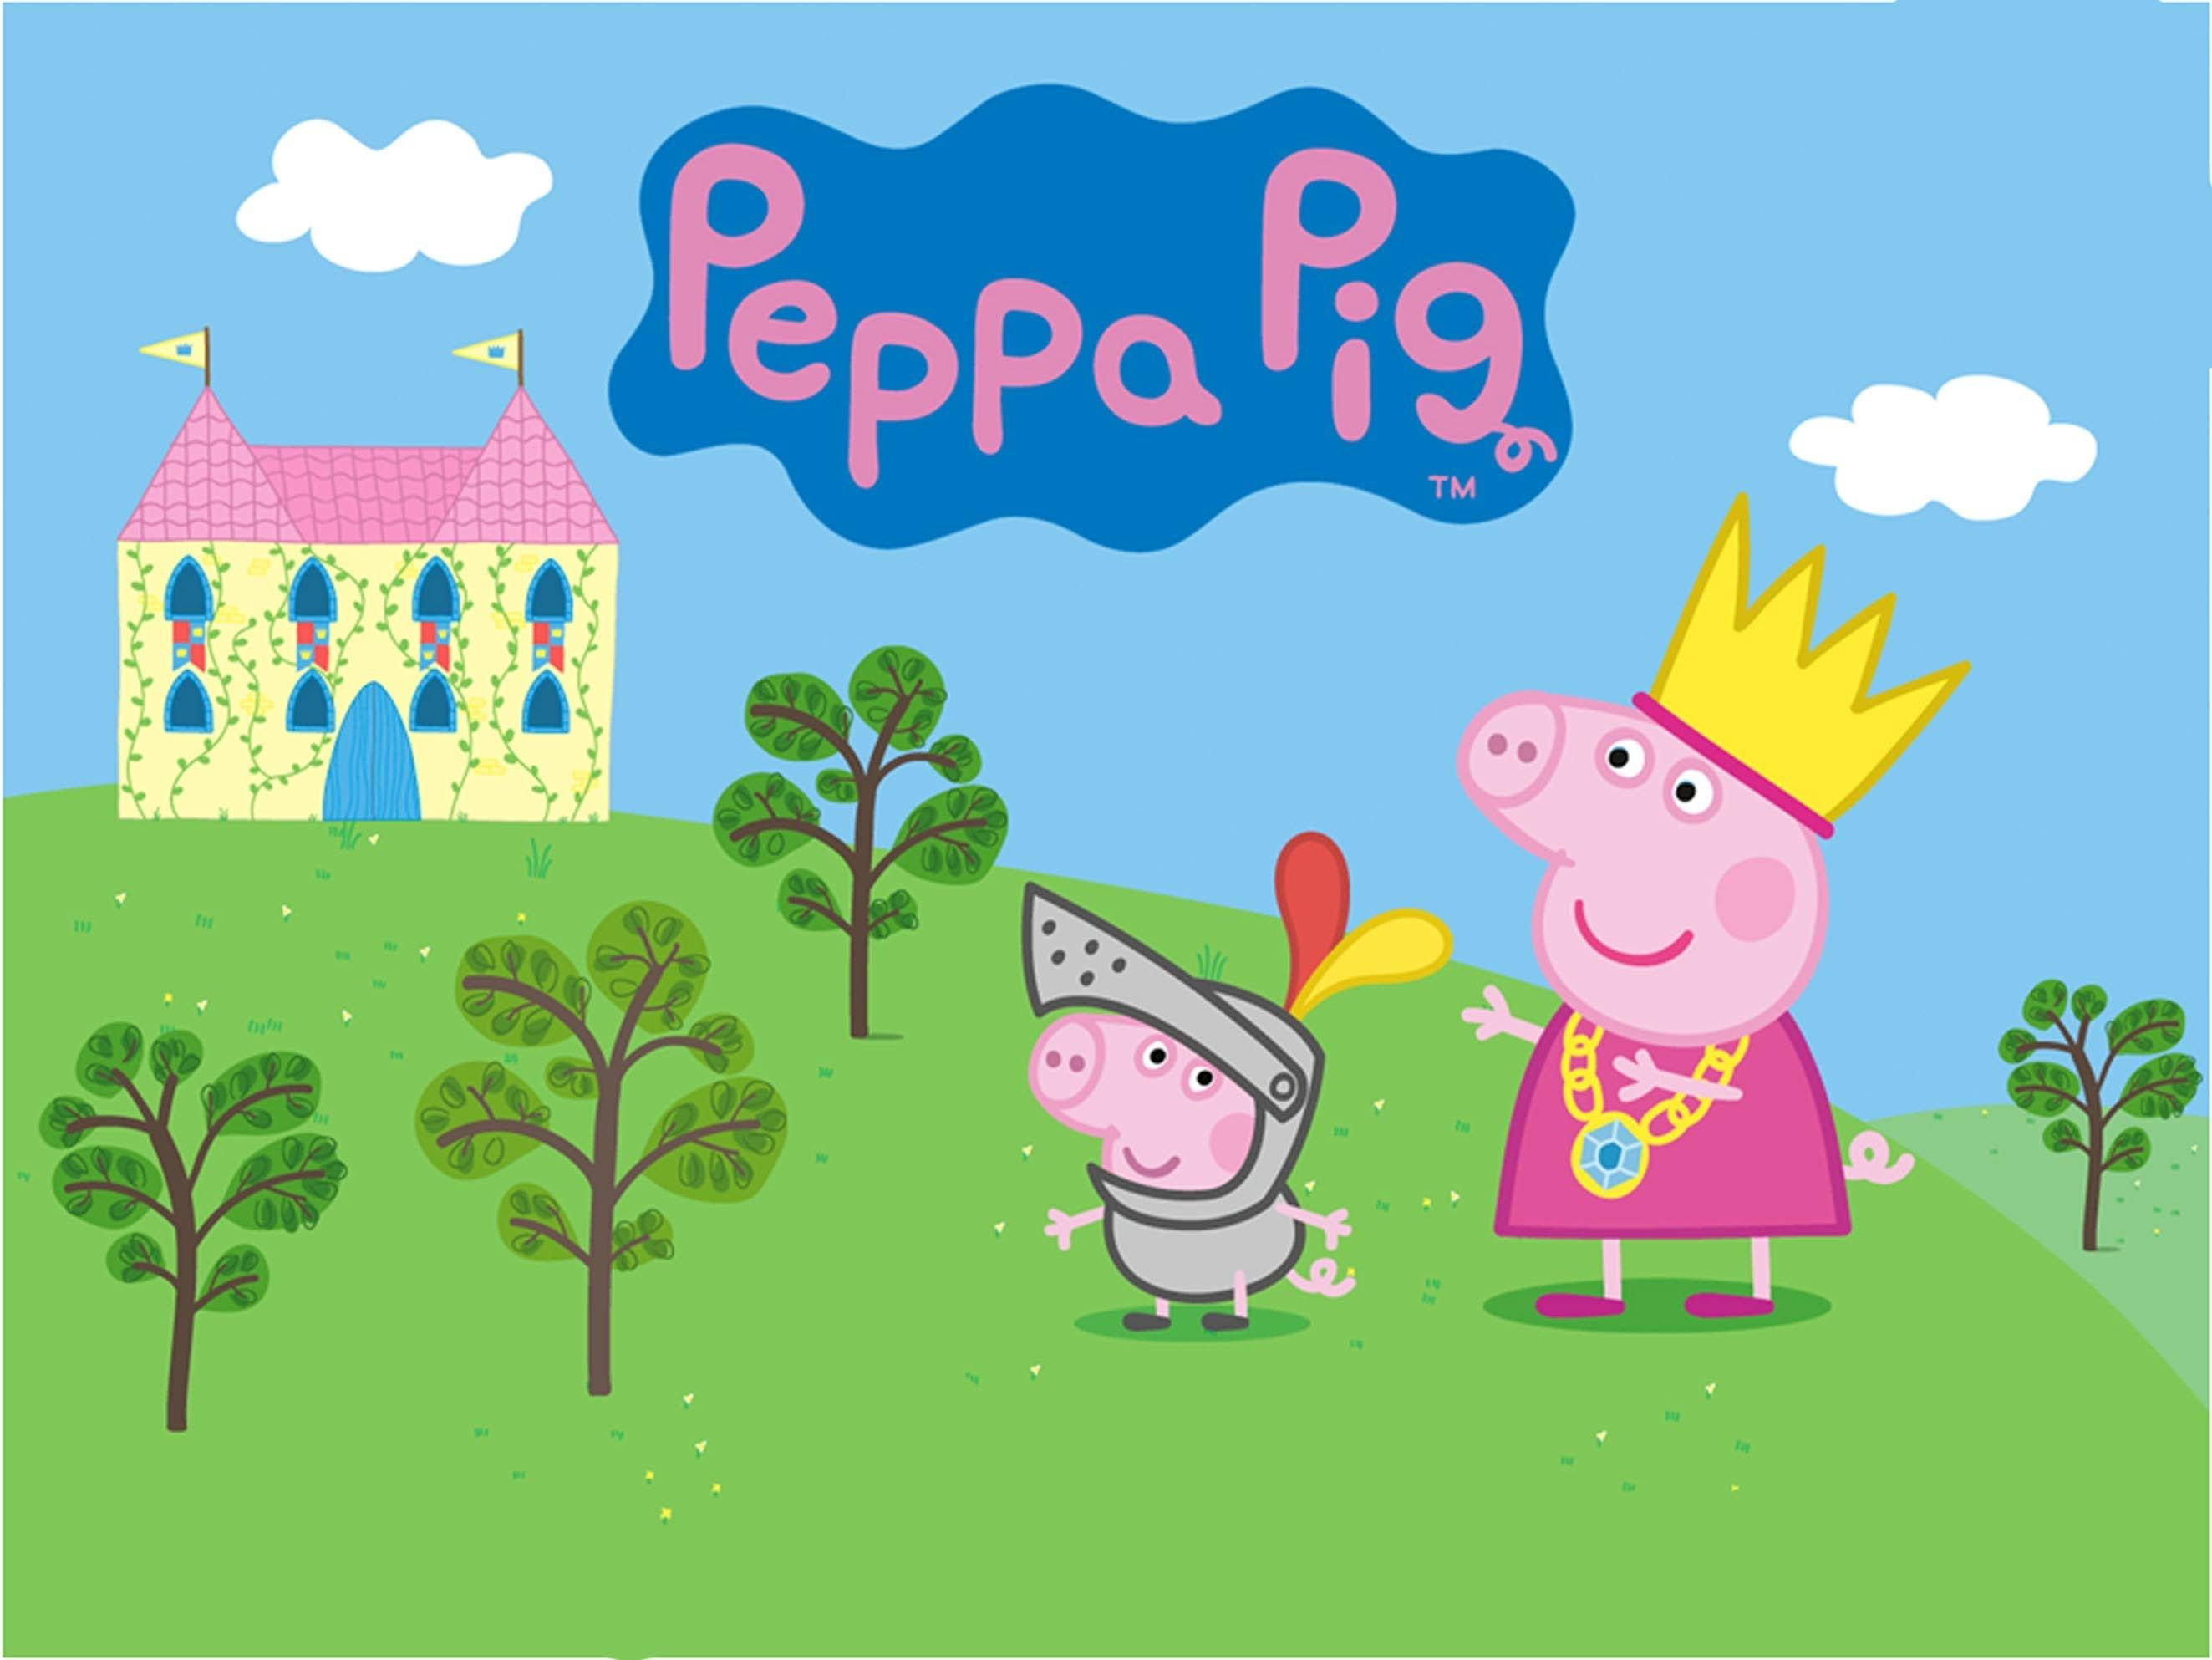 2560x1440 Peppa Pig English Episodes New Episodes 2015 Peppa Pig en  español 2015 Peppa Pig English 2015 - YouTube